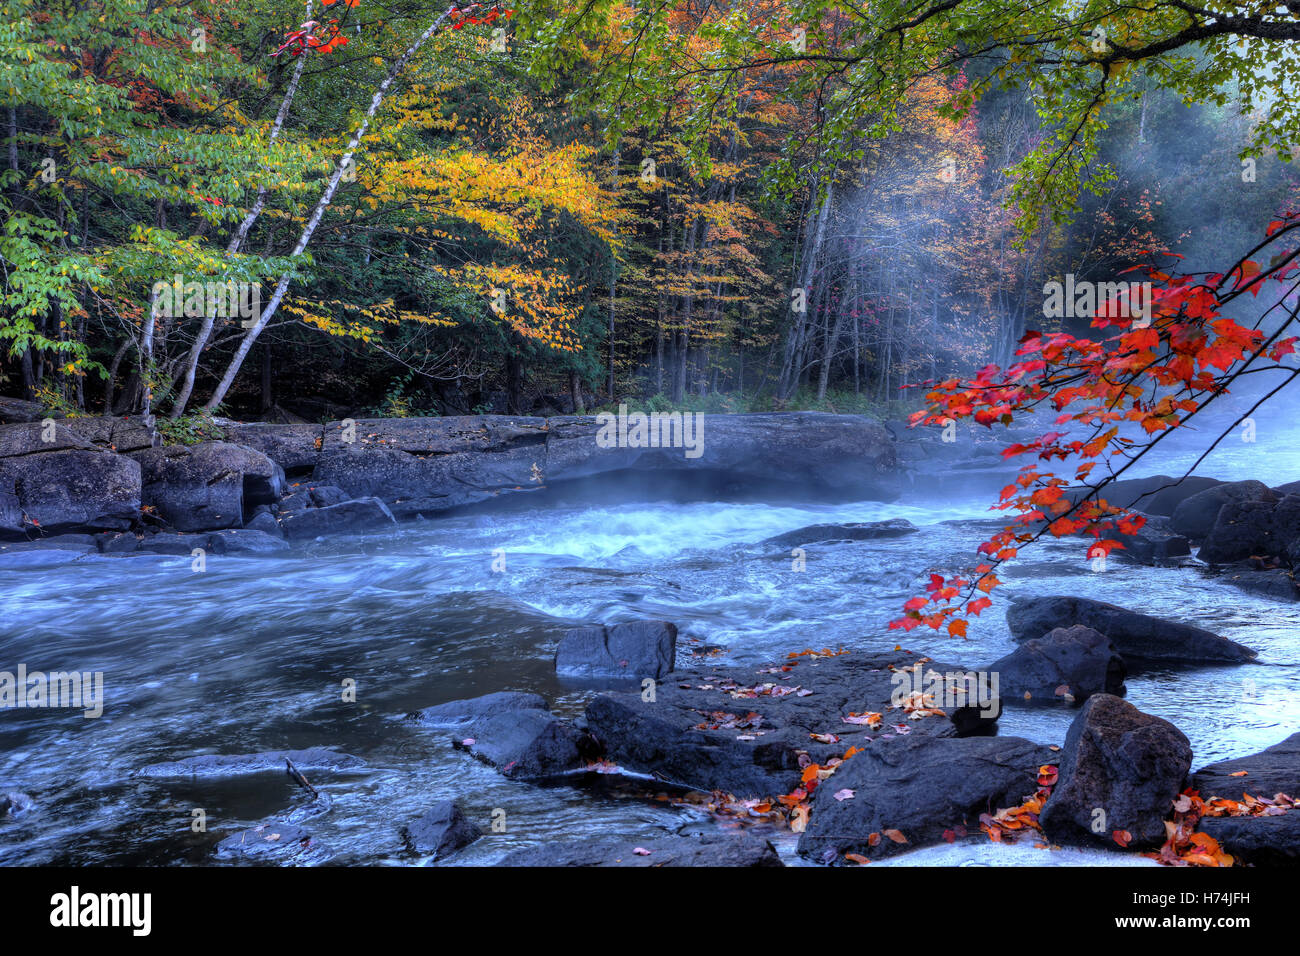 An Algonquin river rapids in autumn - Stock Image